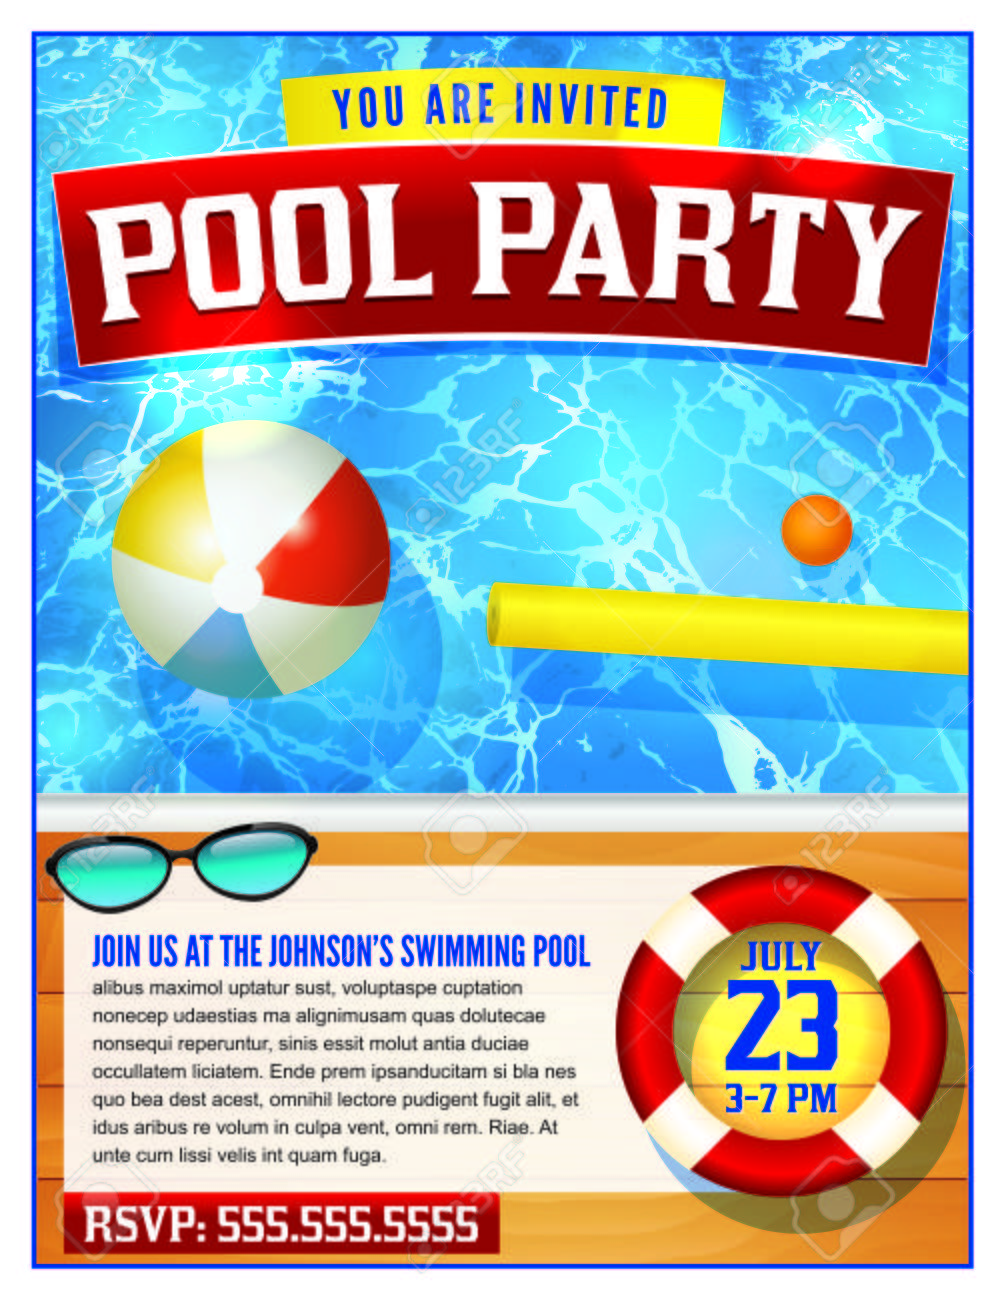 A Template For A Pool Party Invitation. Vector Eps 10 Available. Stock  Vector -